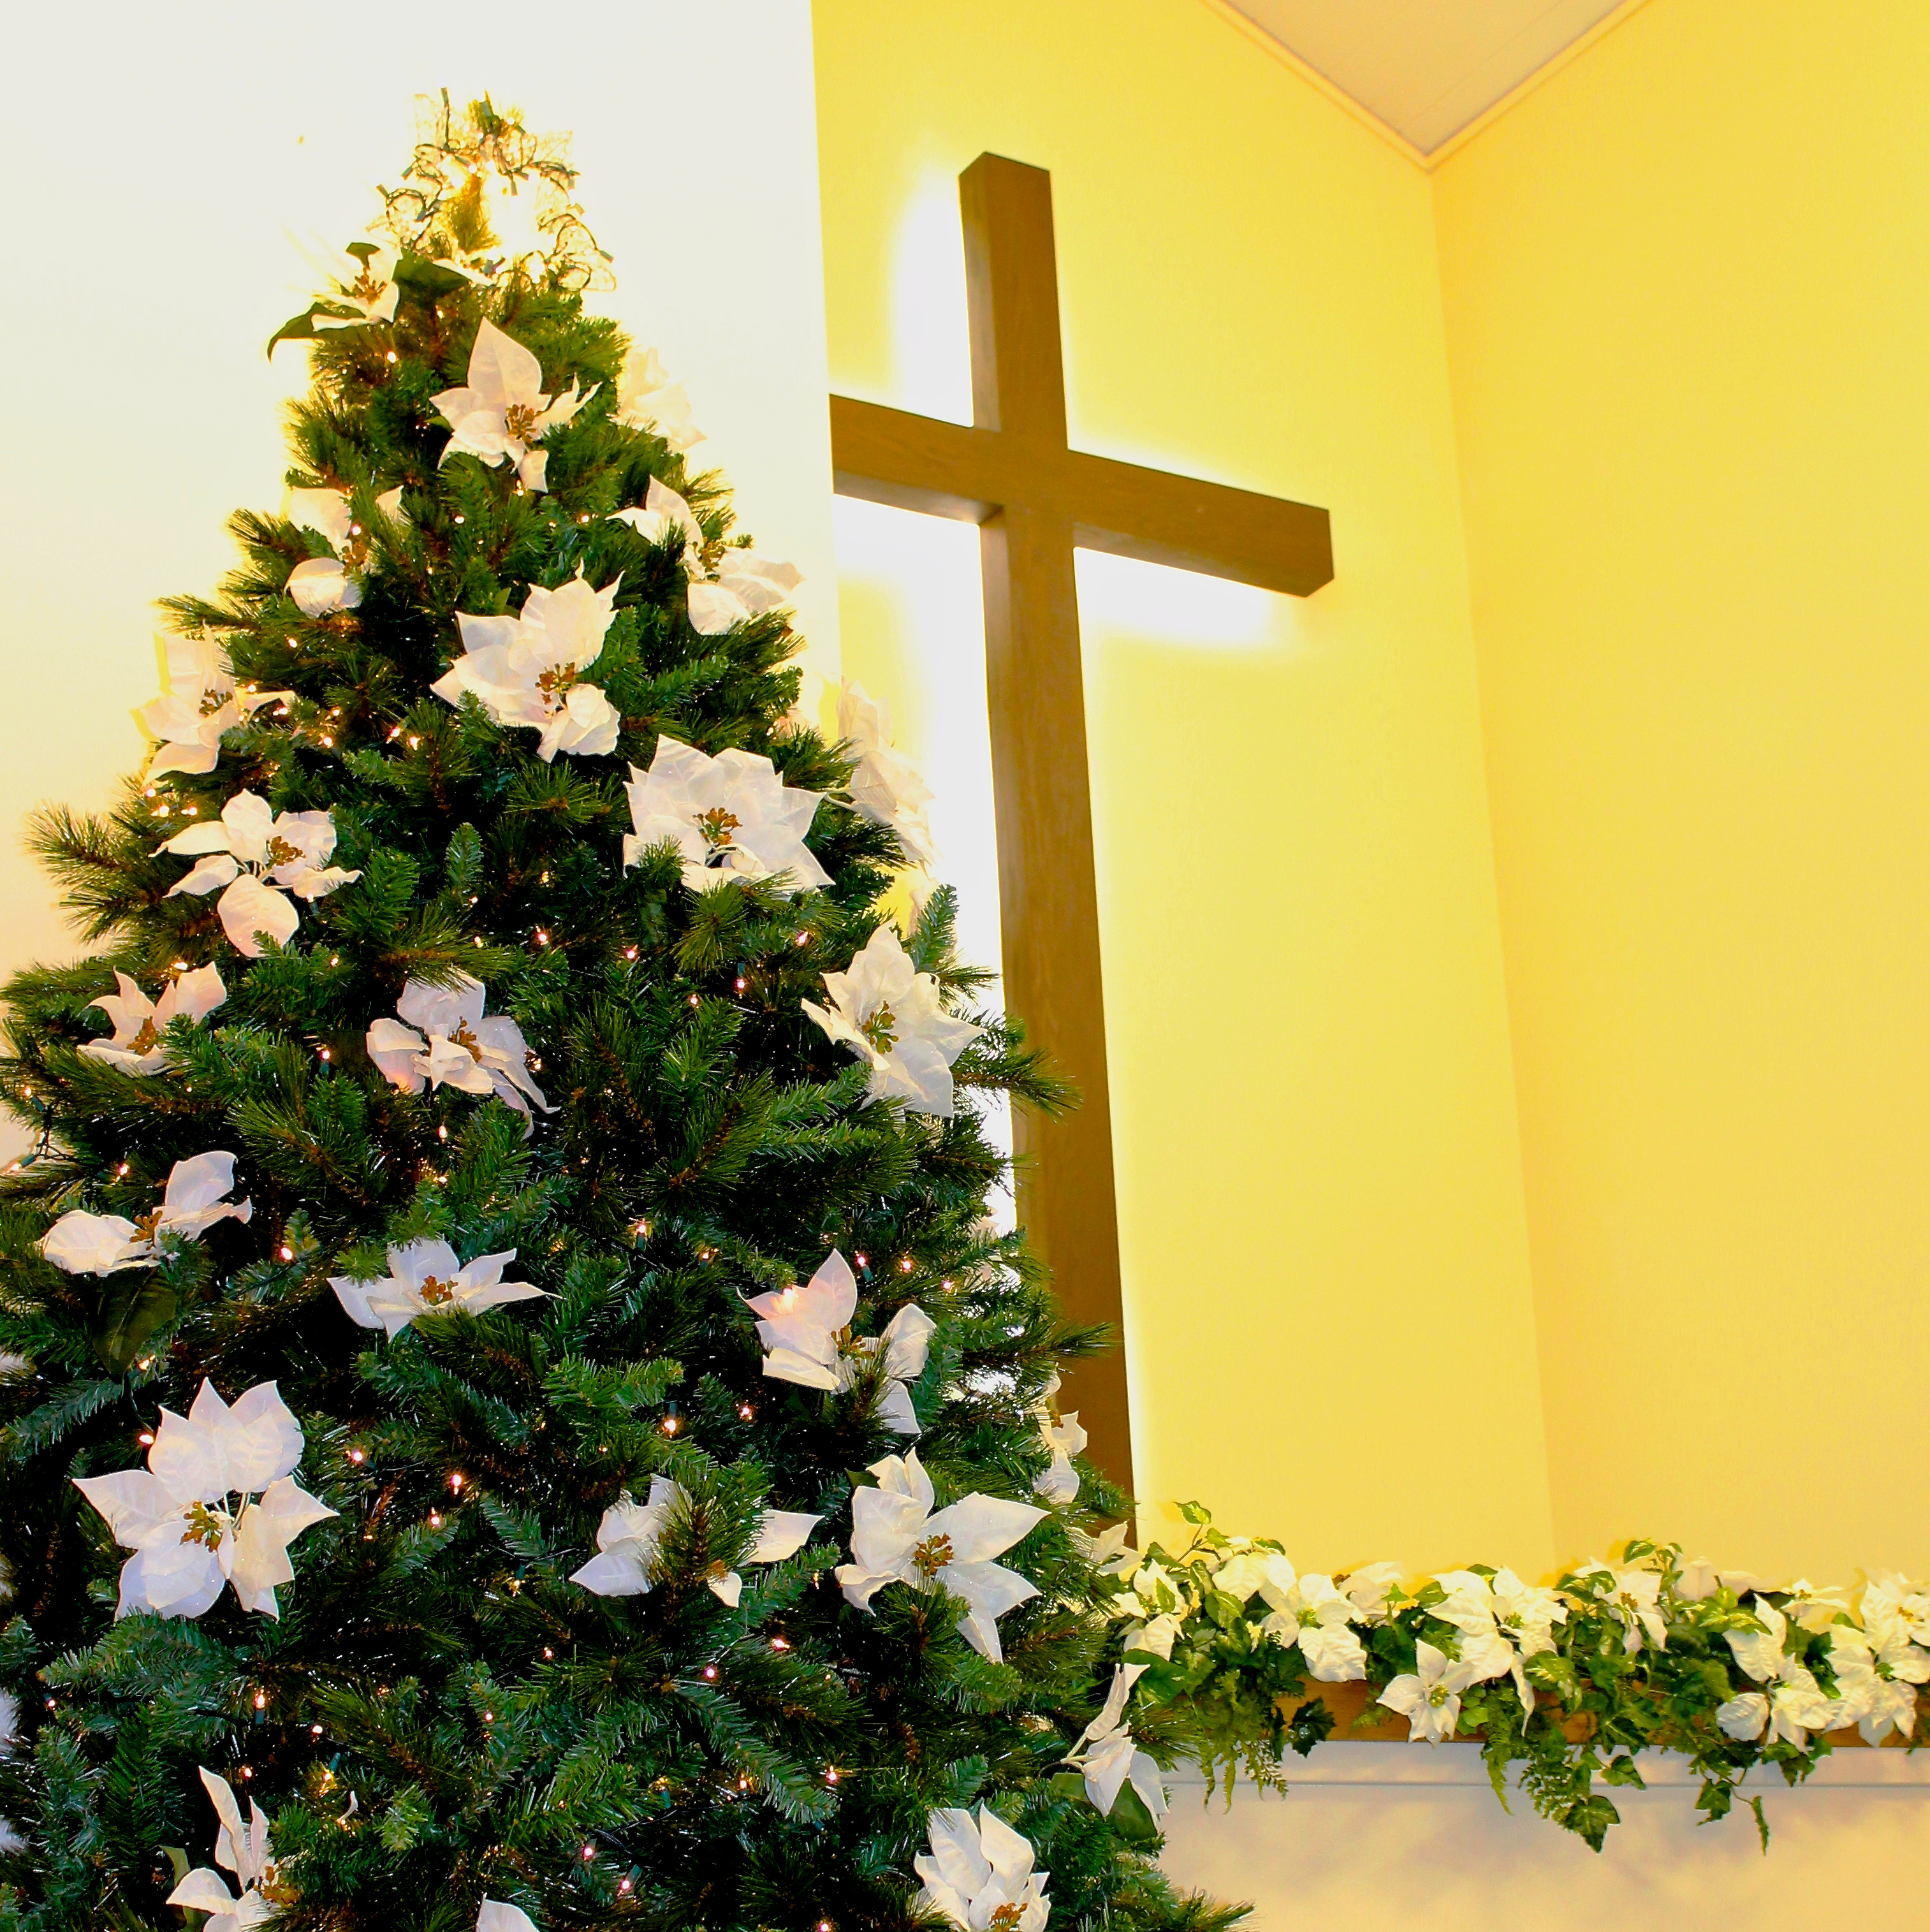 Christmas Services at Local Churches